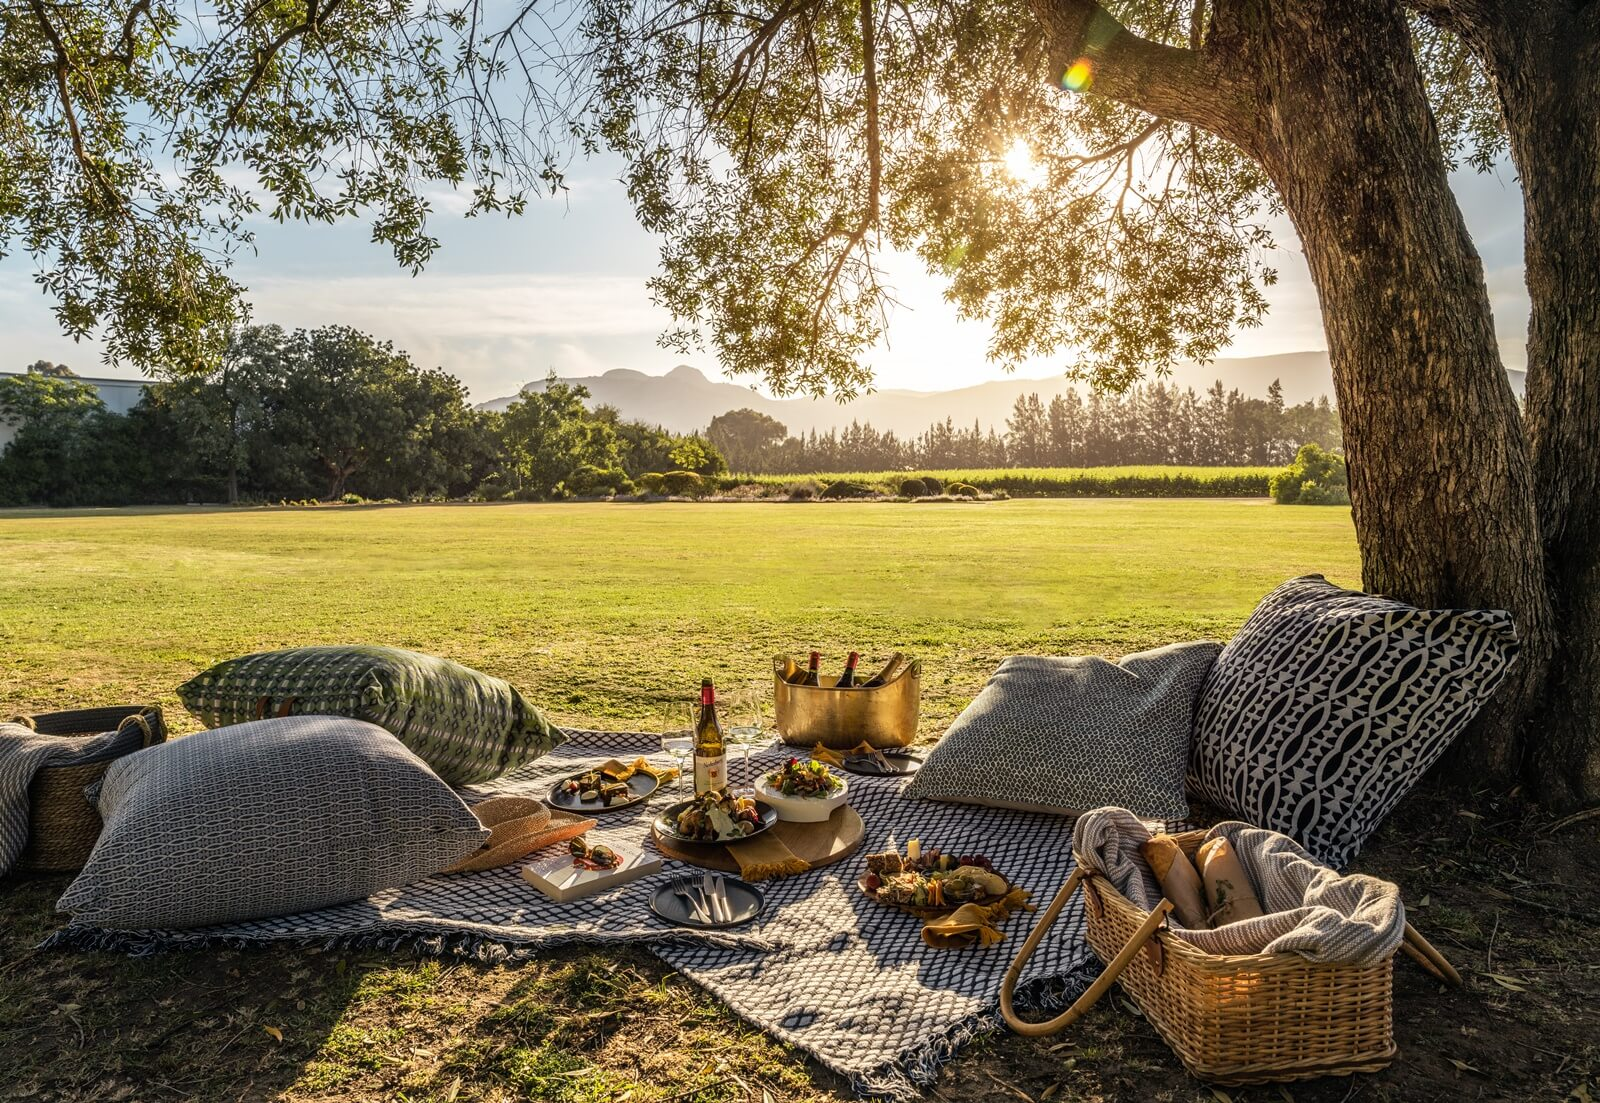 PICNIC IN THE WINELANDS